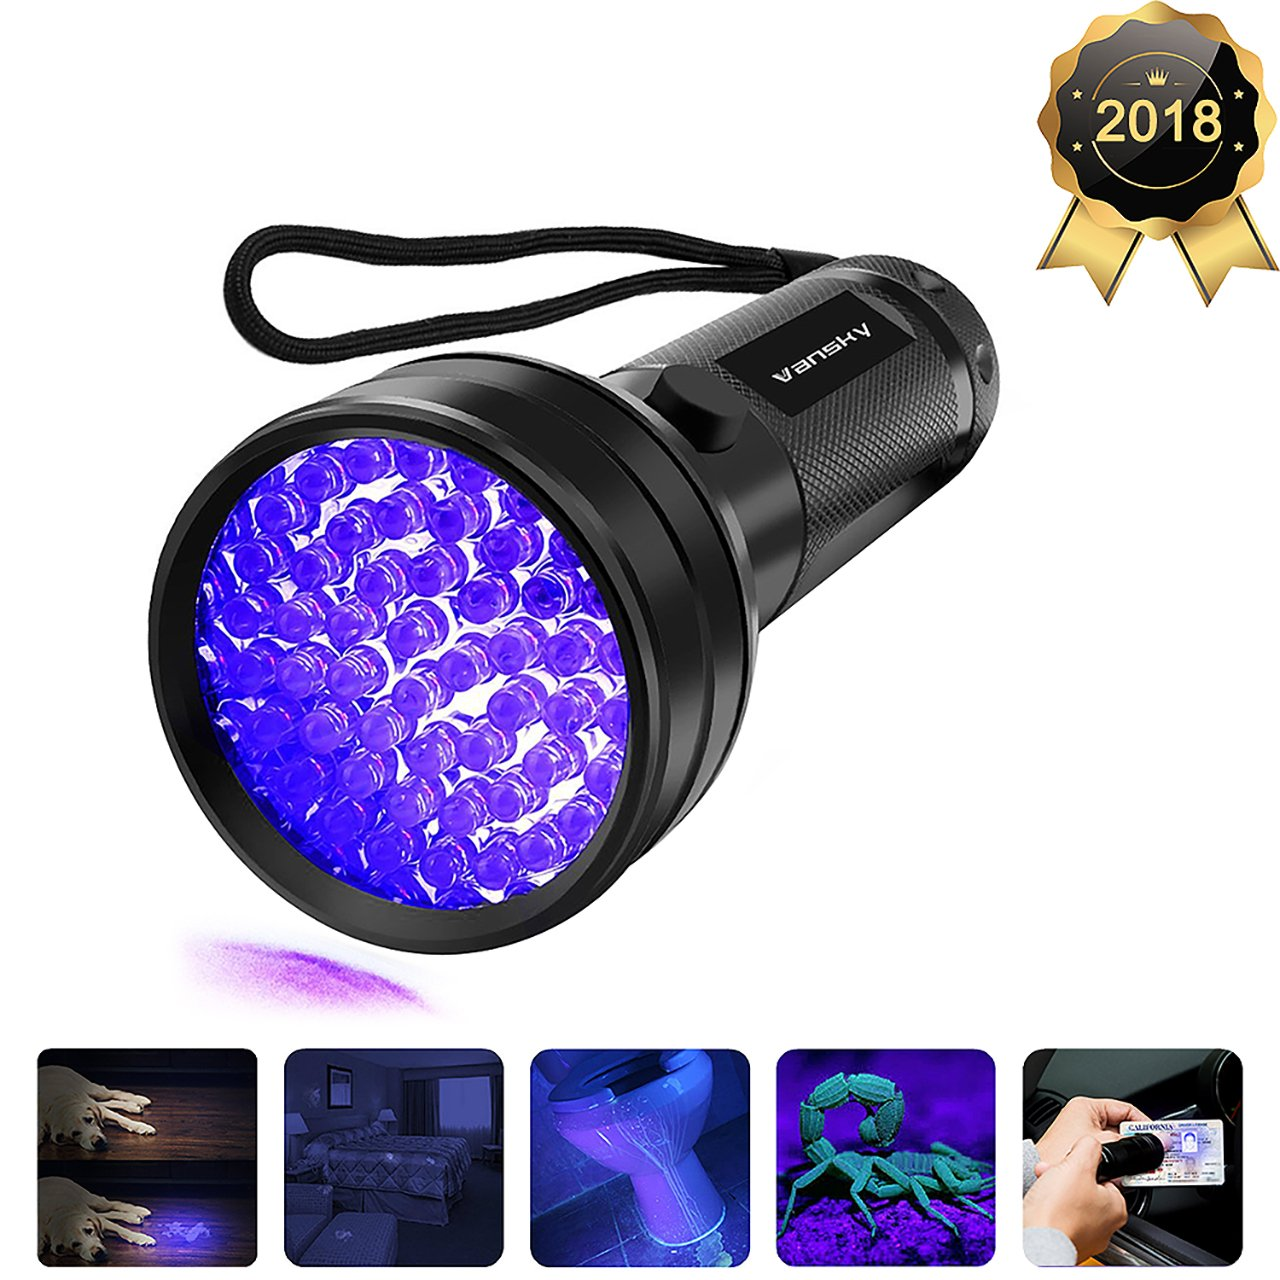 Vansky Black Light UV Flashlight, 2018 Upgraded UV Lights 51 LED Ultraviolet Blacklight Pet Urine Detector for Dog/Cat Urine,Dry Stains,Bed Bug, Matching with Pet Odor Eliminator